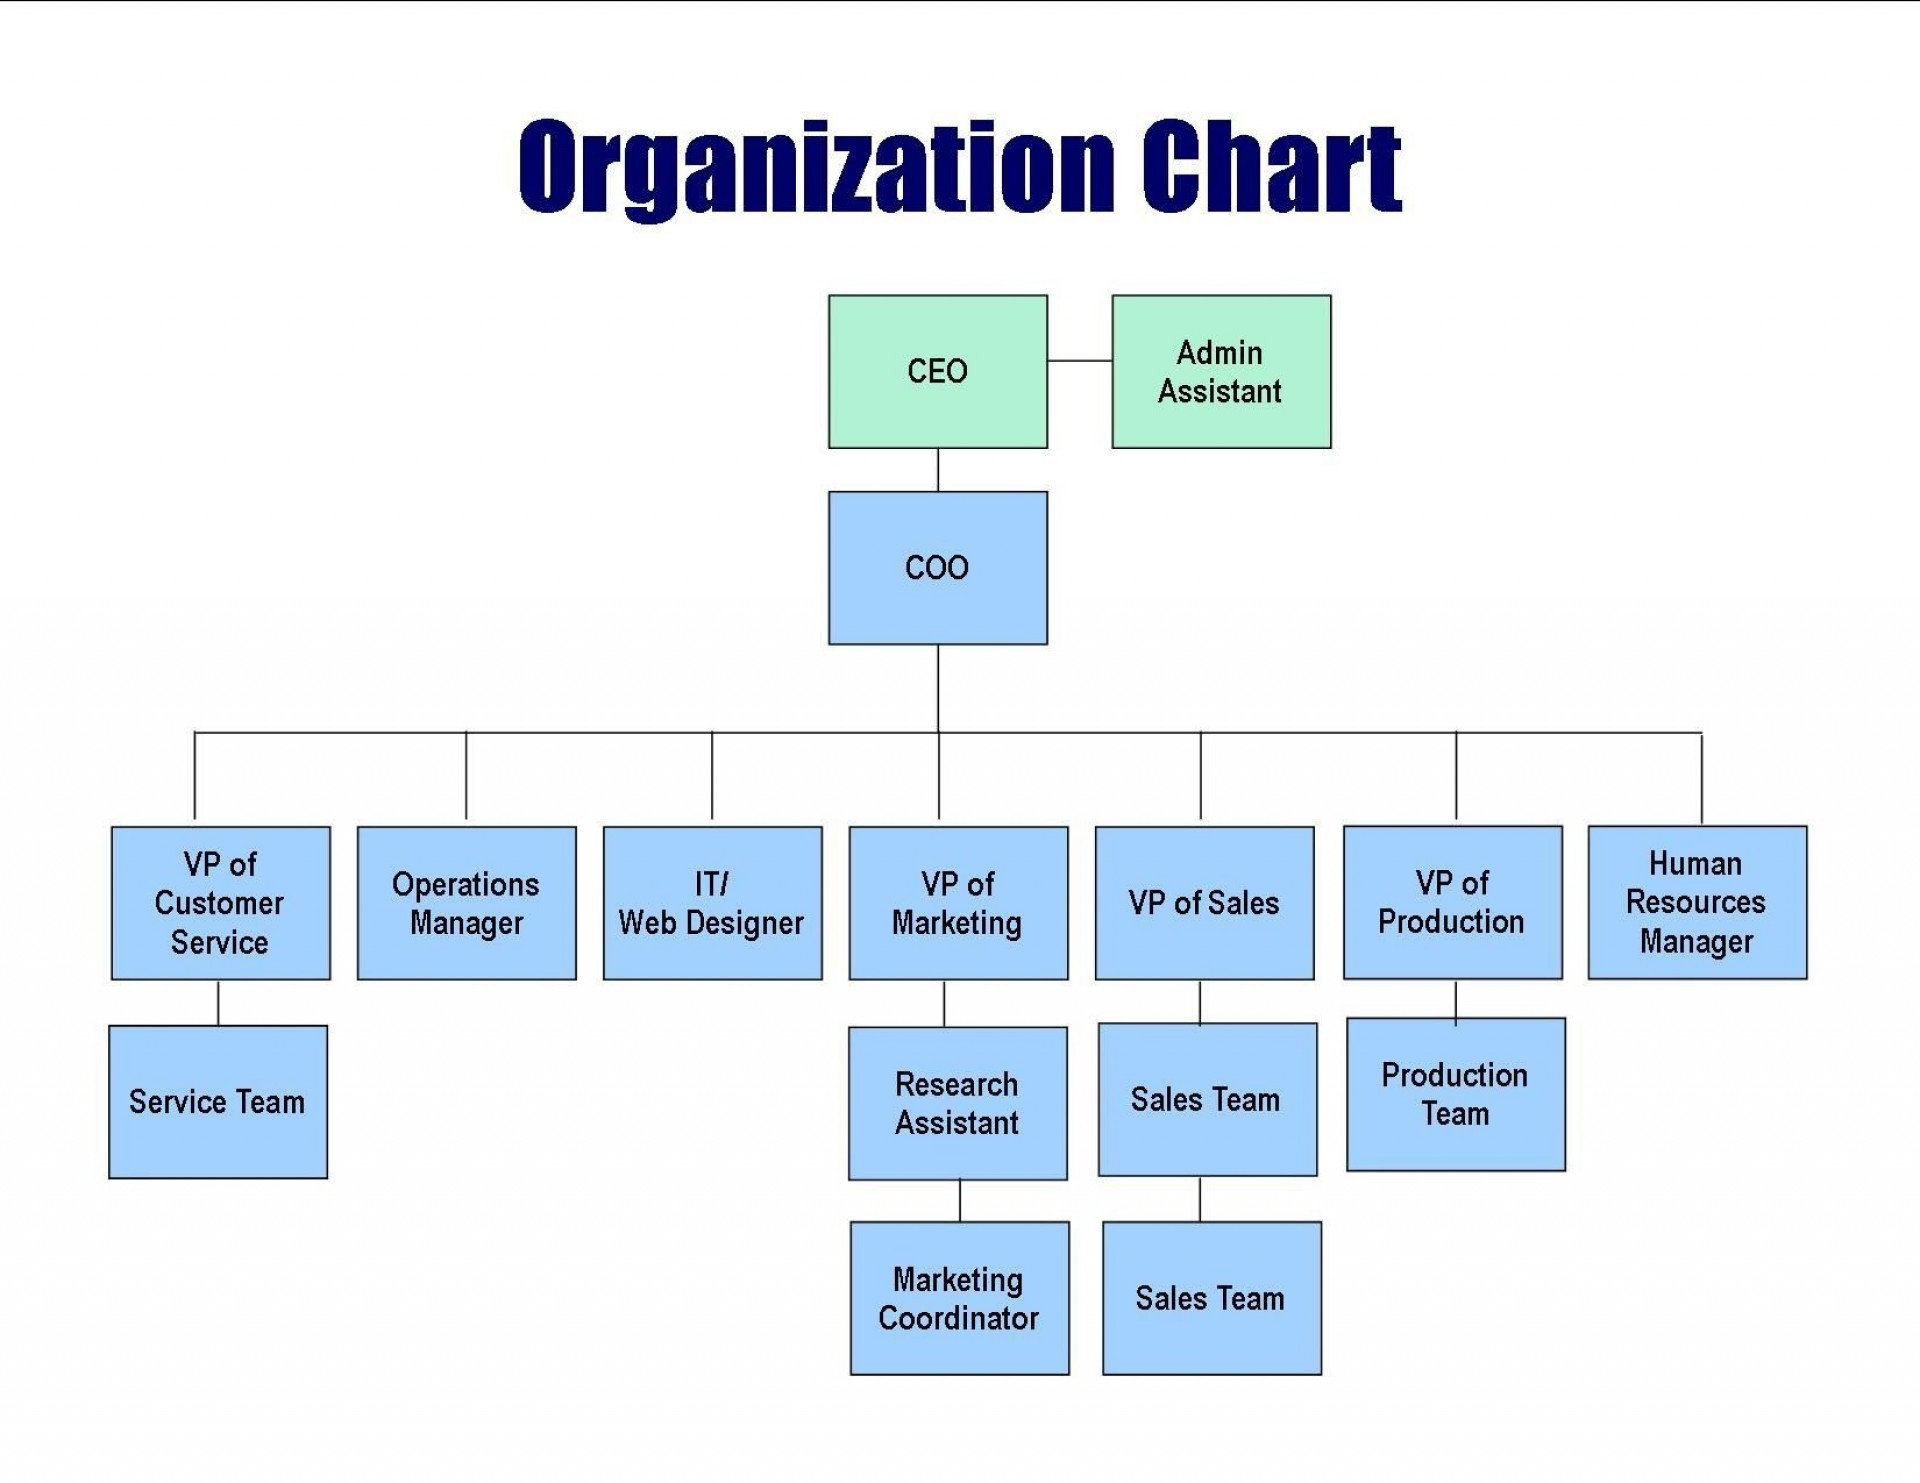 004 Shocking Free Organizational Chart Template Word 2007 Concept 1920